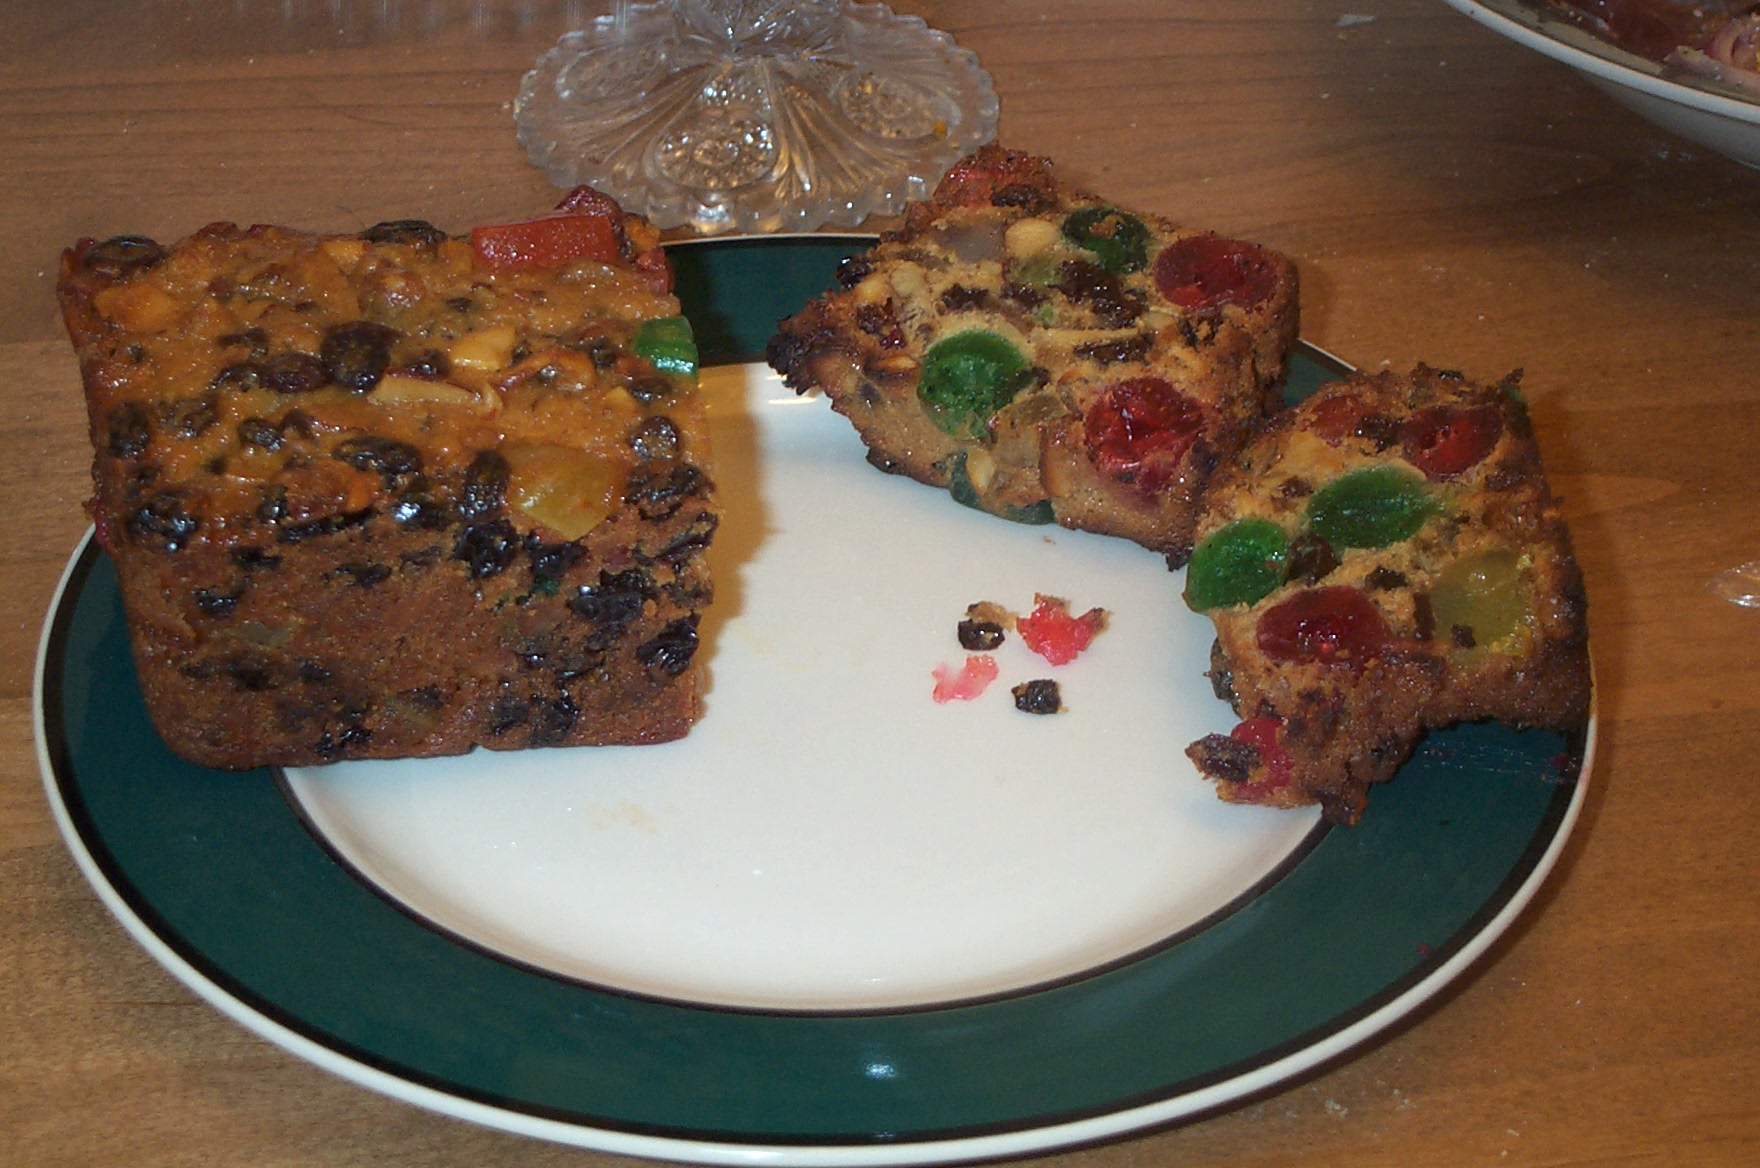 https://upload.wikimedia.org/wikipedia/commons/b/b2/Traditional_fruitcake.jpg